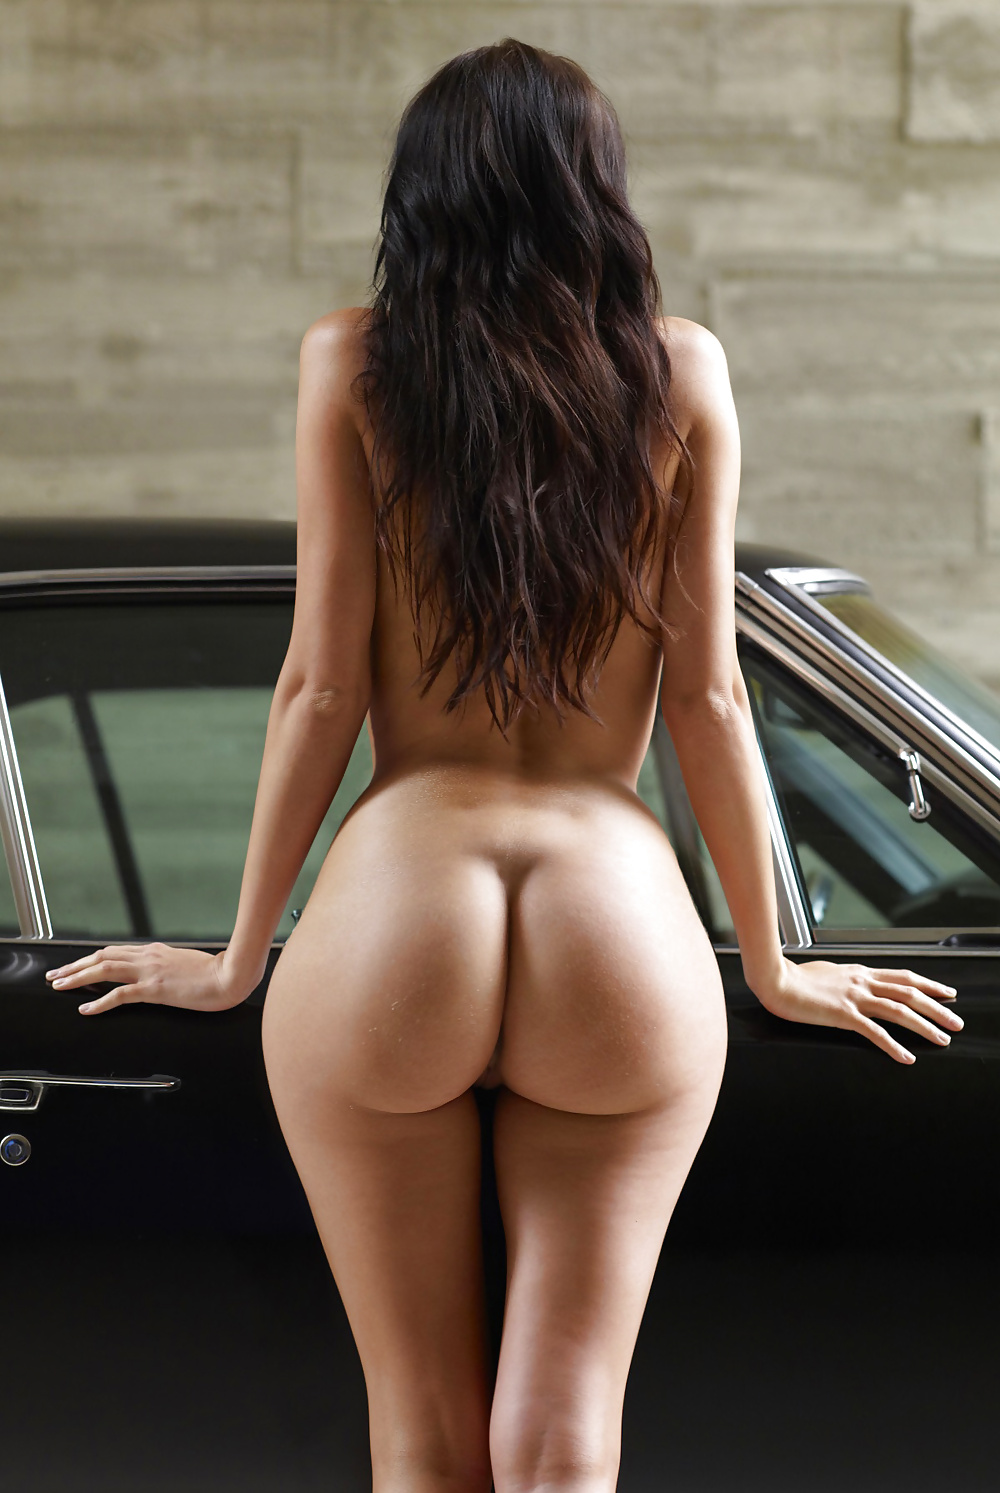 Butt naked pic — photo 2